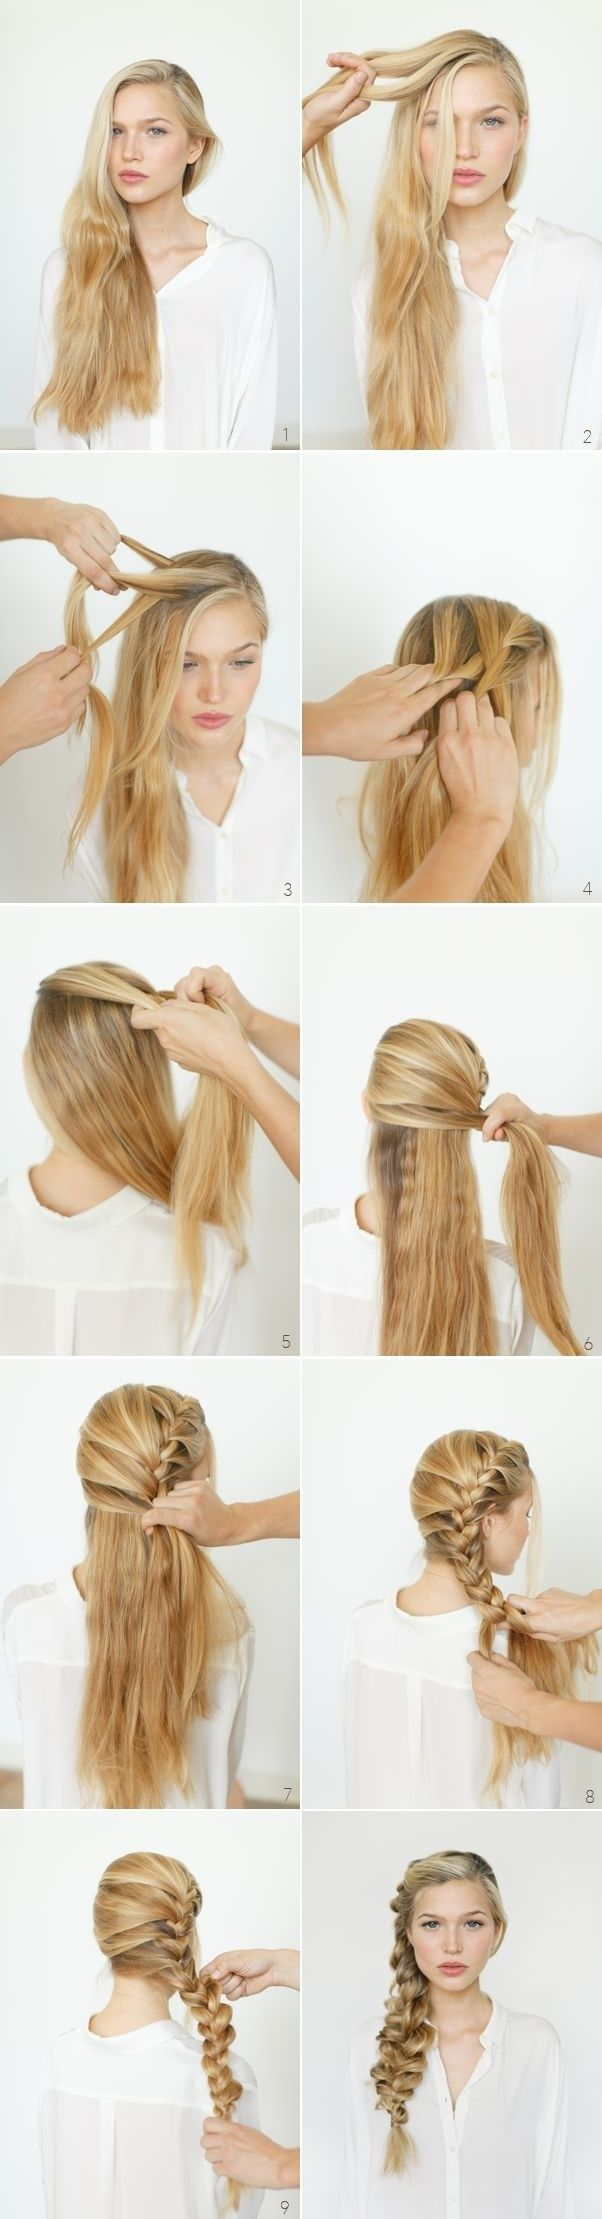 8 Cute Braided Hairstyles for Girls: Long Hair Ideas 2014 - 2015